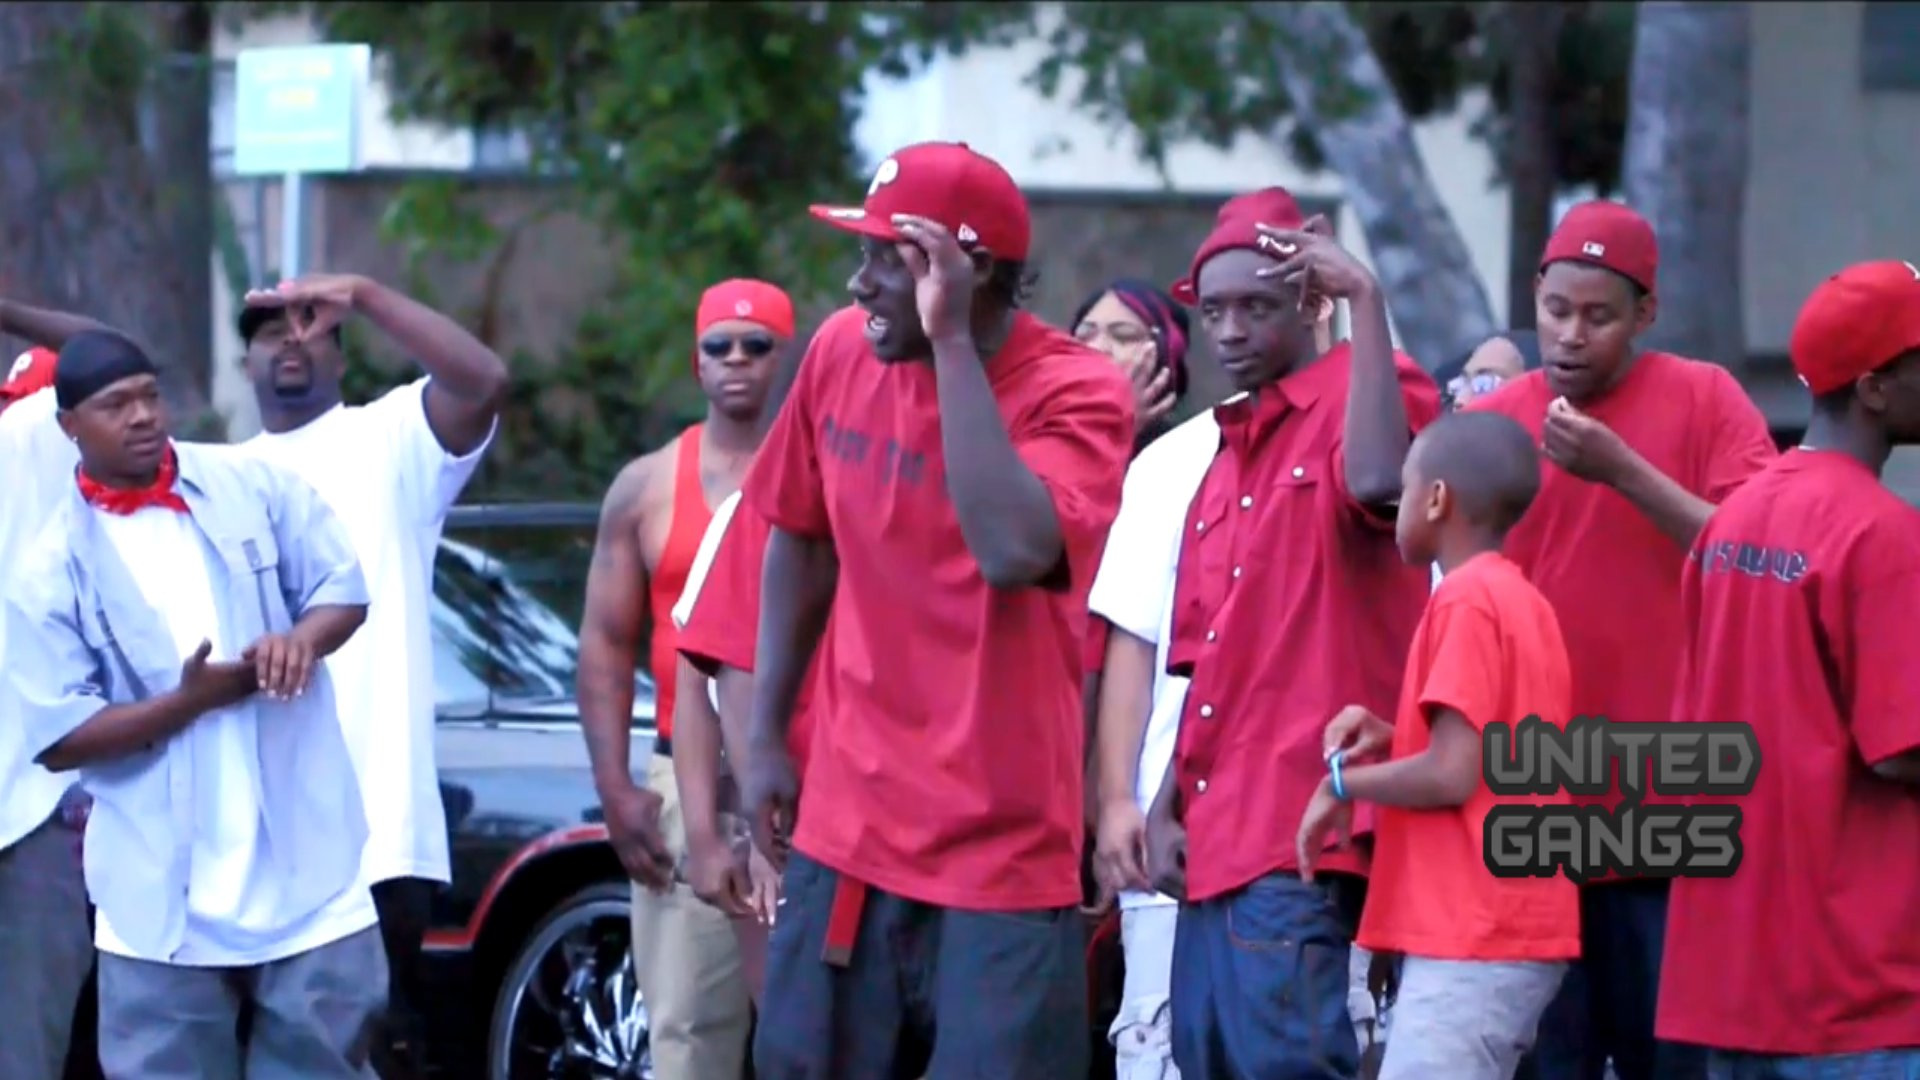 Bloods amp Crips Also known as Bloods And Crips Crips amp Bloods Bloods amp Crips Origin Los Angeles County California Genres Gangsta rap Gfunk West Coast hip hop